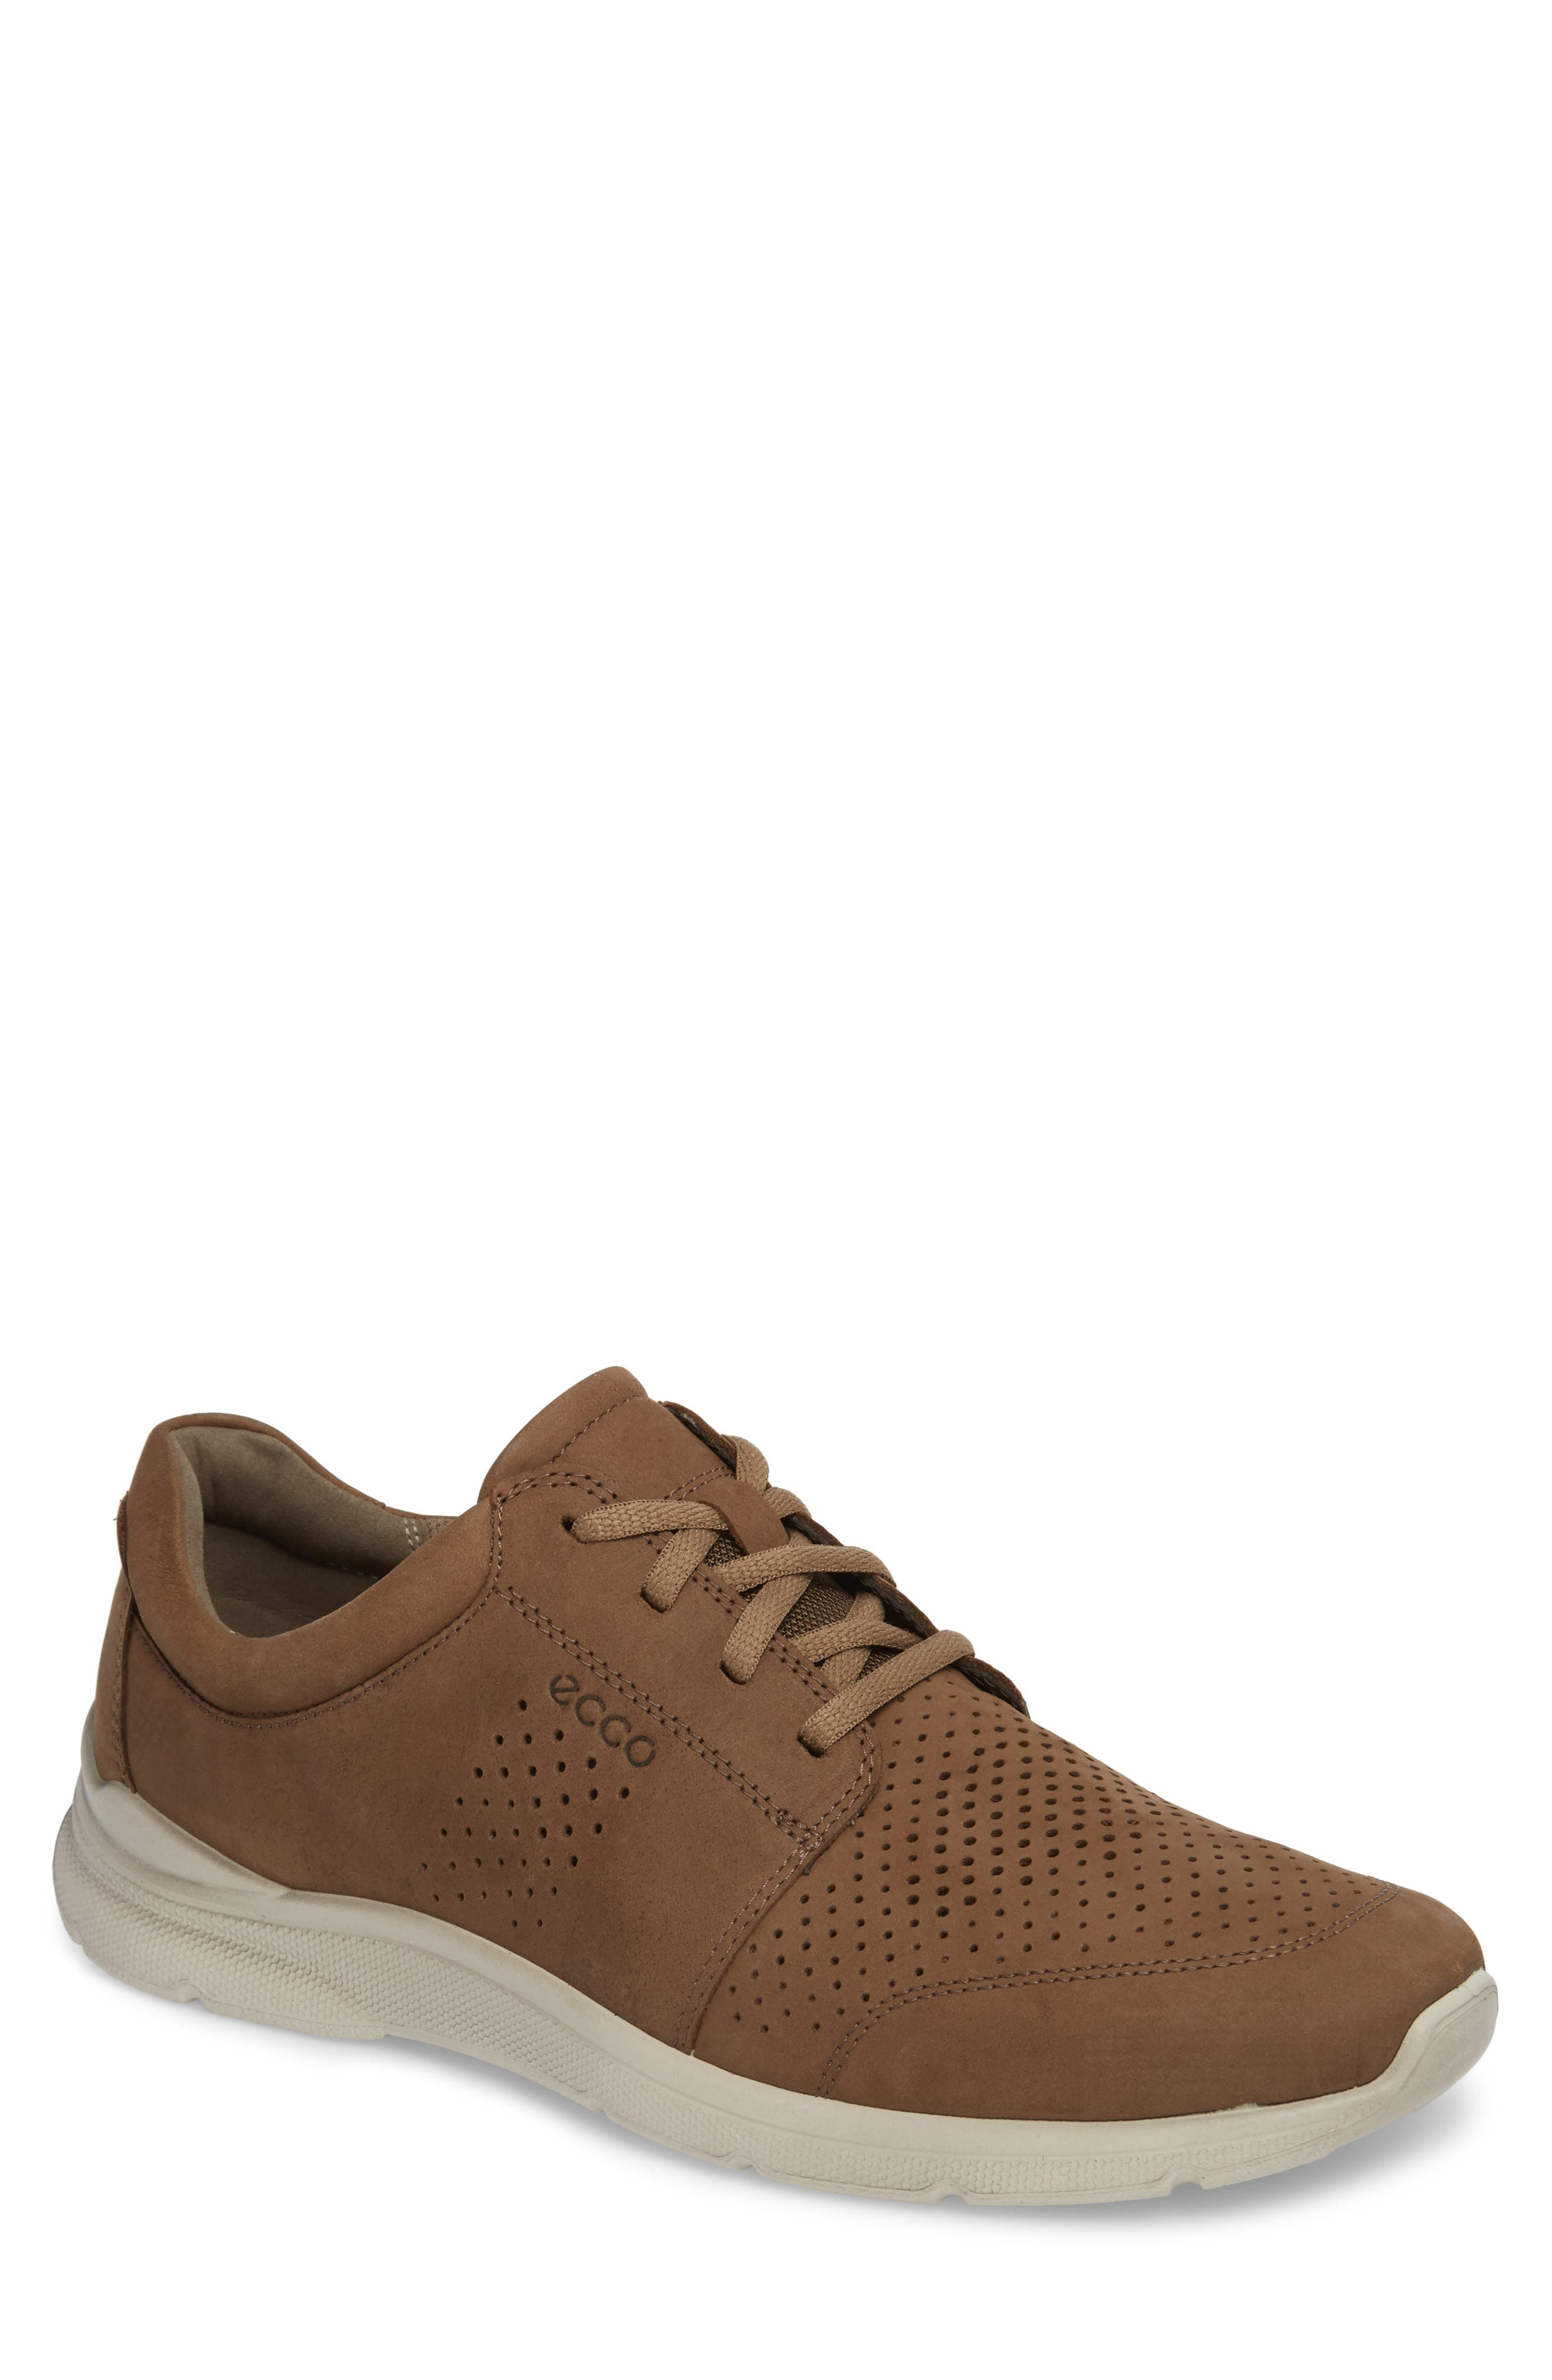 Irving Lace-Up Sneaker,                         Main,                         color, 209